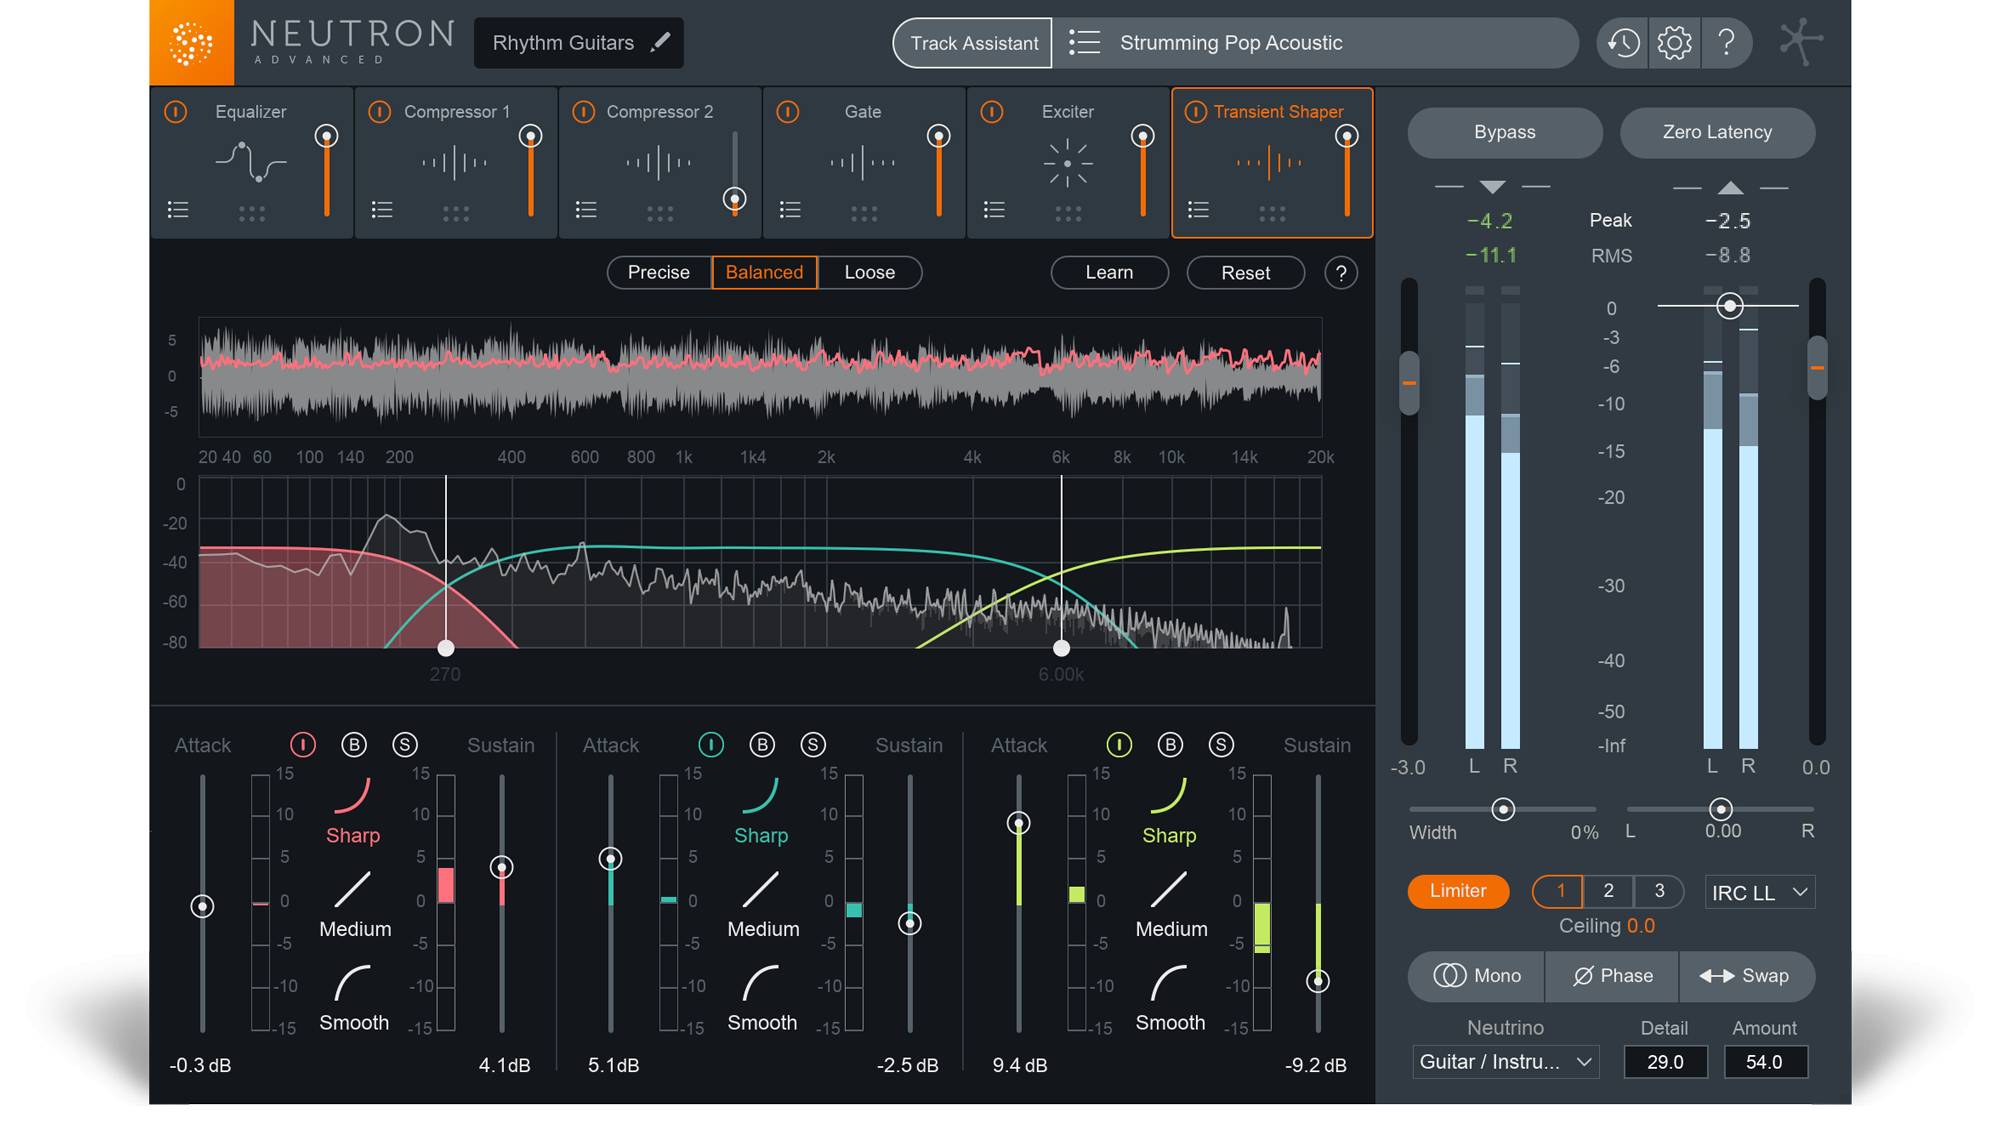 Neutron 2 A Smarter Way To Mix Izotope Audio Mixing Tools Block Diagrams Of Electronic Equipments Electronics Repair And